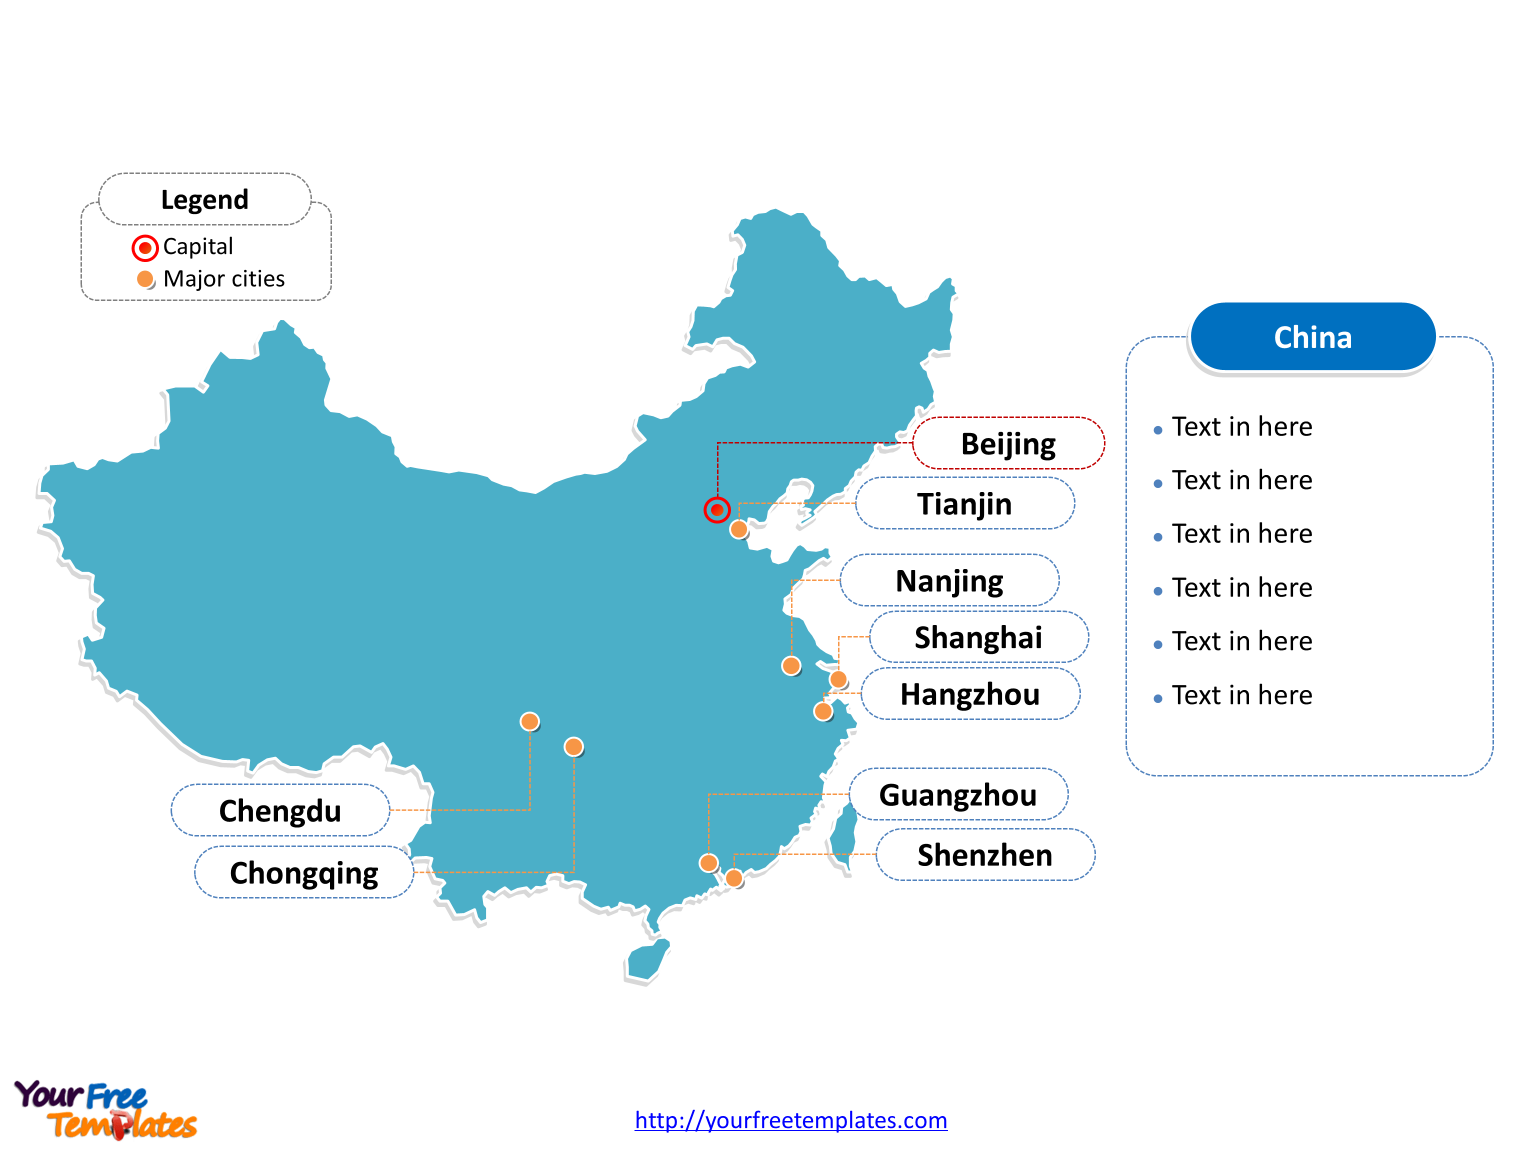 China map download free powerpoint templates map of china with outline and cities labeled on the china map download gumiabroncs Gallery